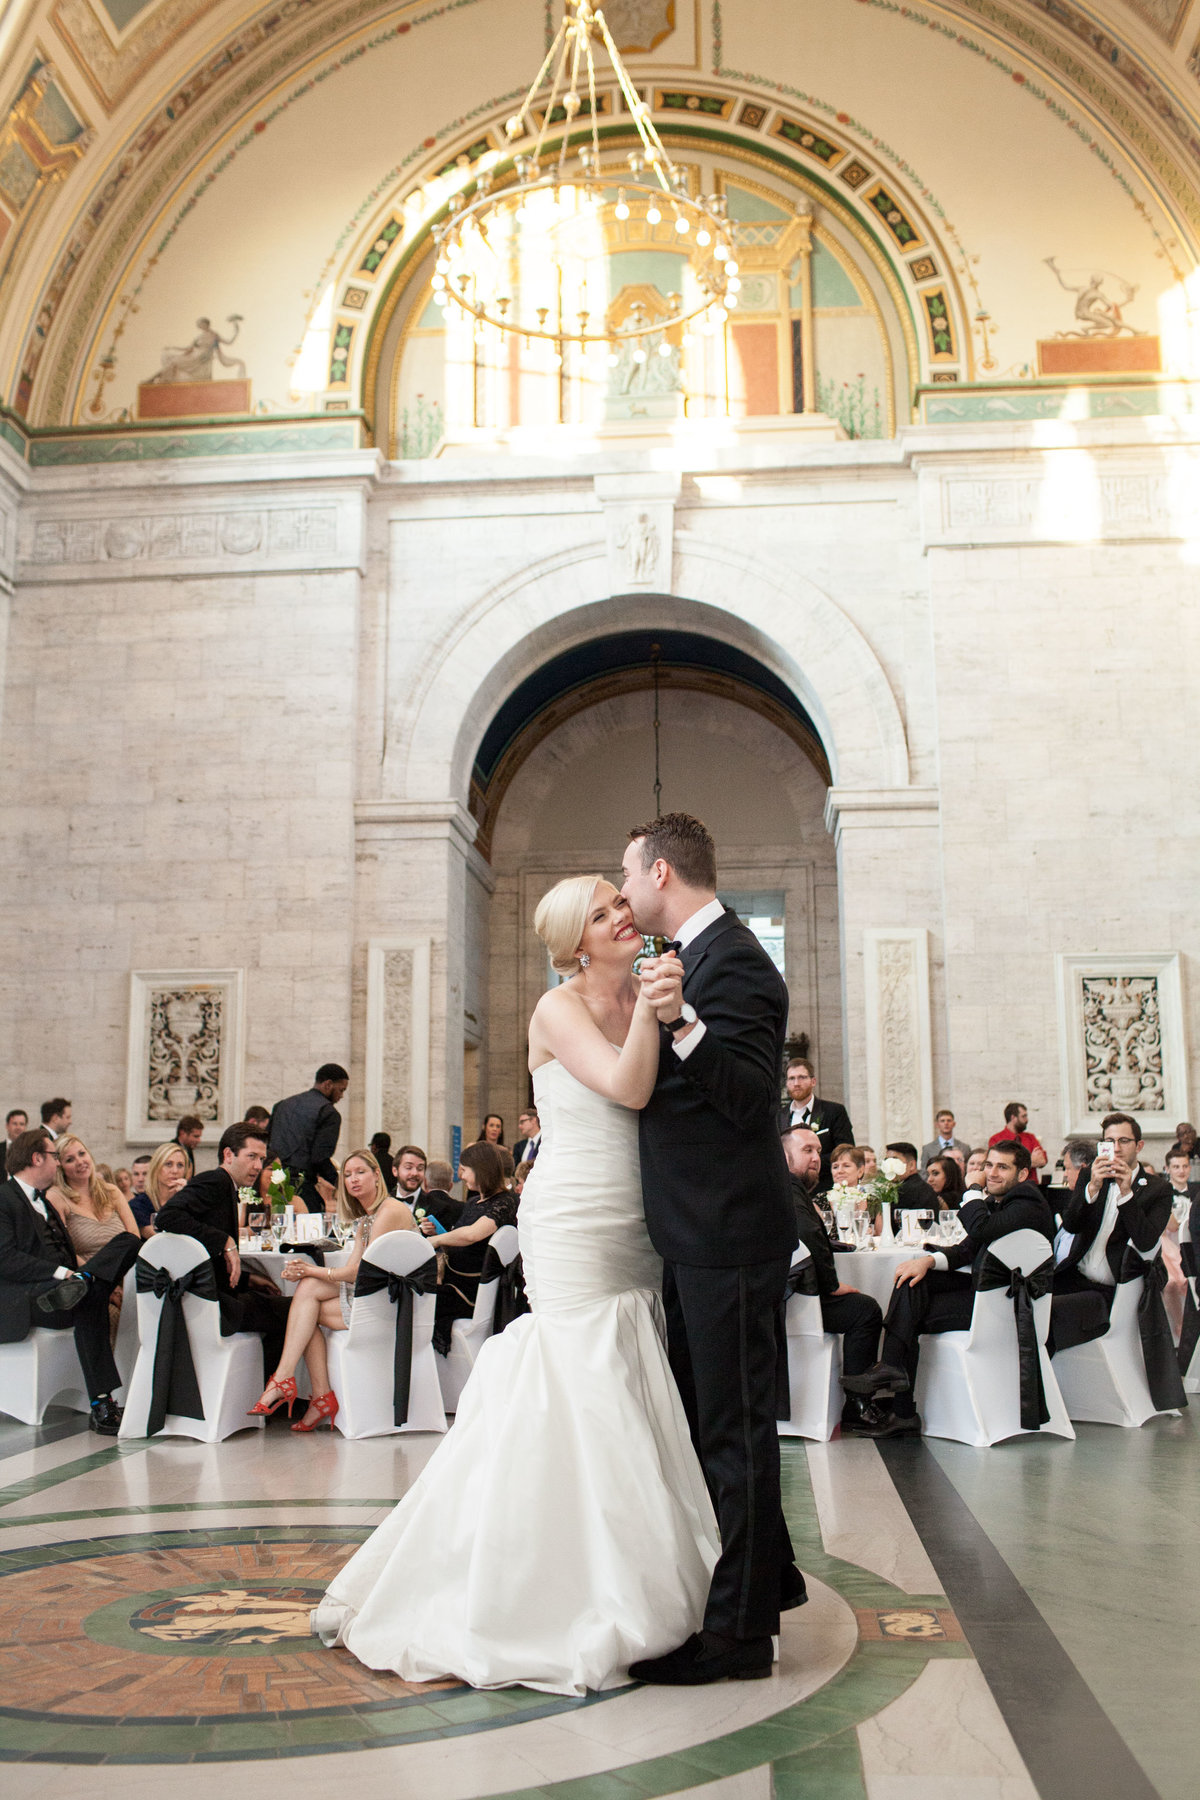 Cottrell Wedding - Natalie Probst Photography724